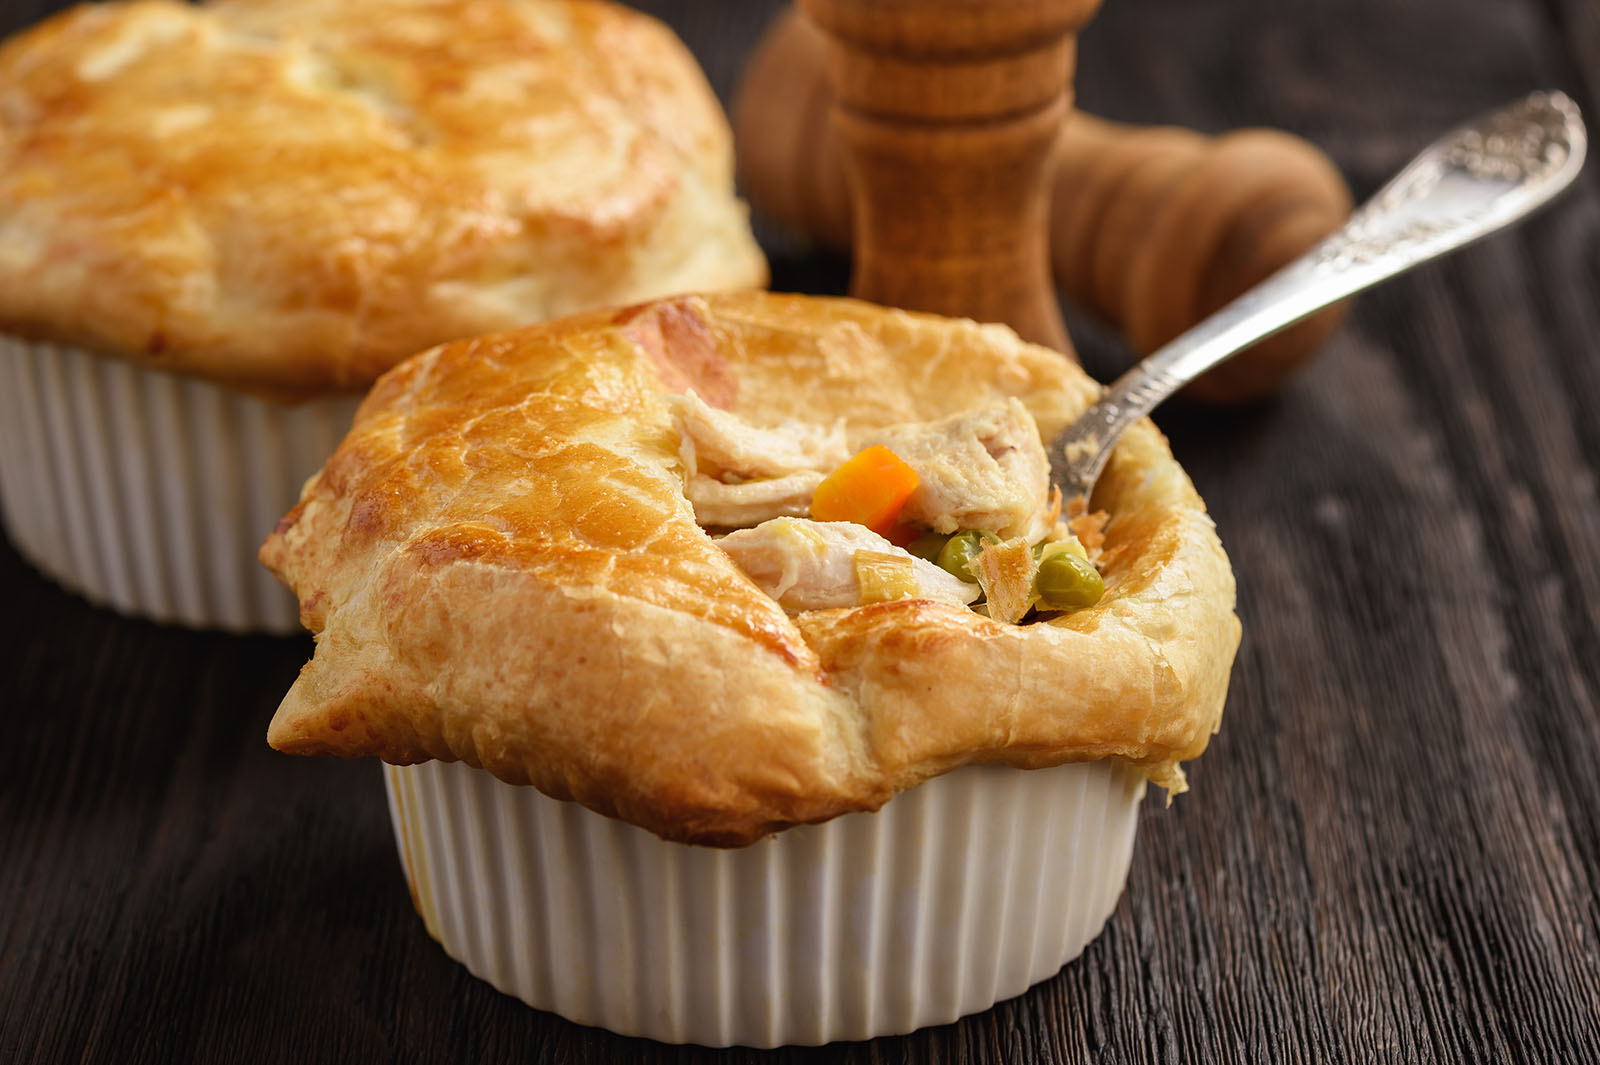 Chicken pot pie with carrot, grean peas and cheese.